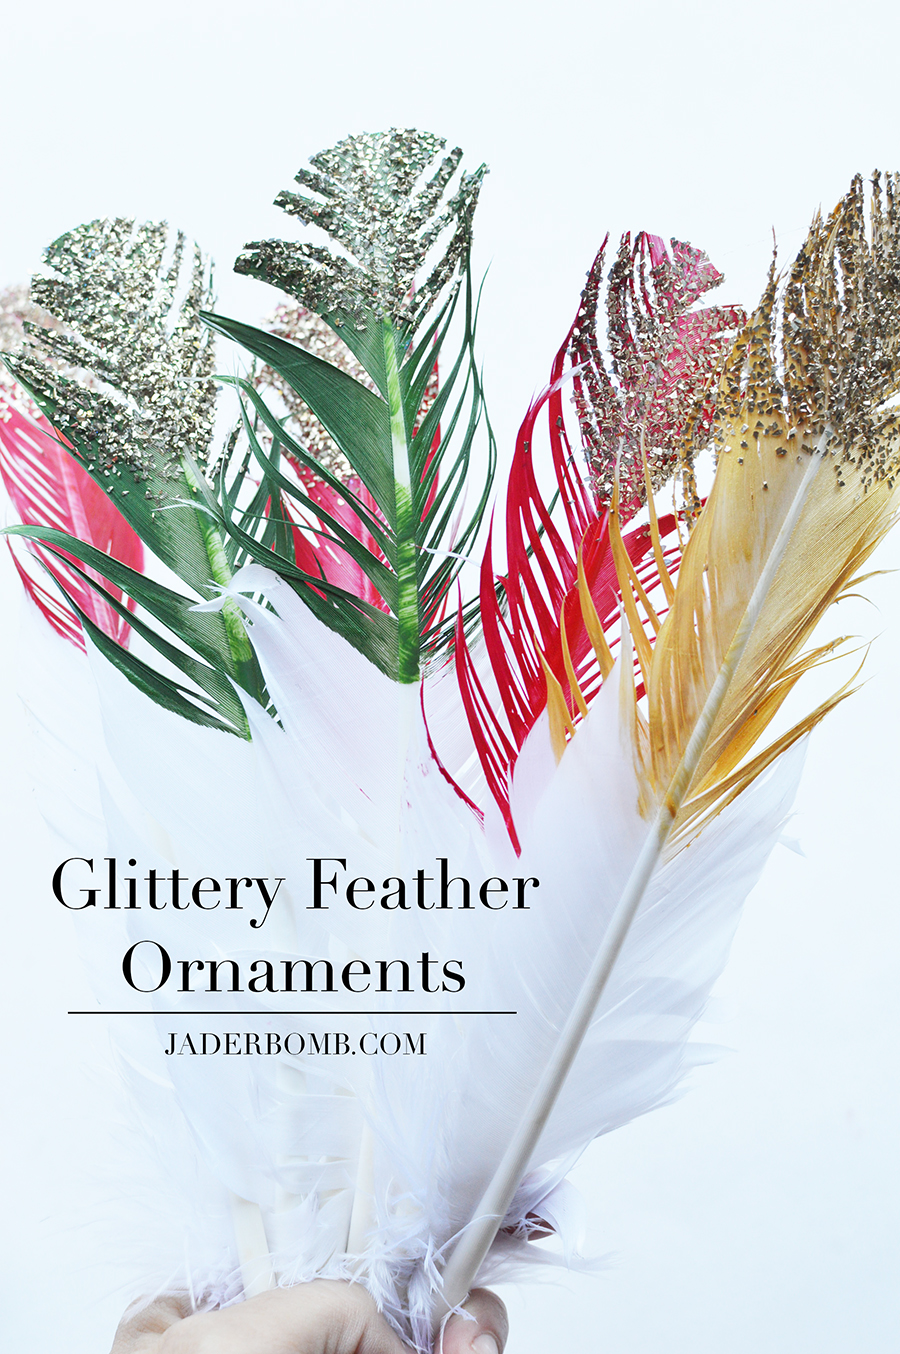 glittery feather ornaments